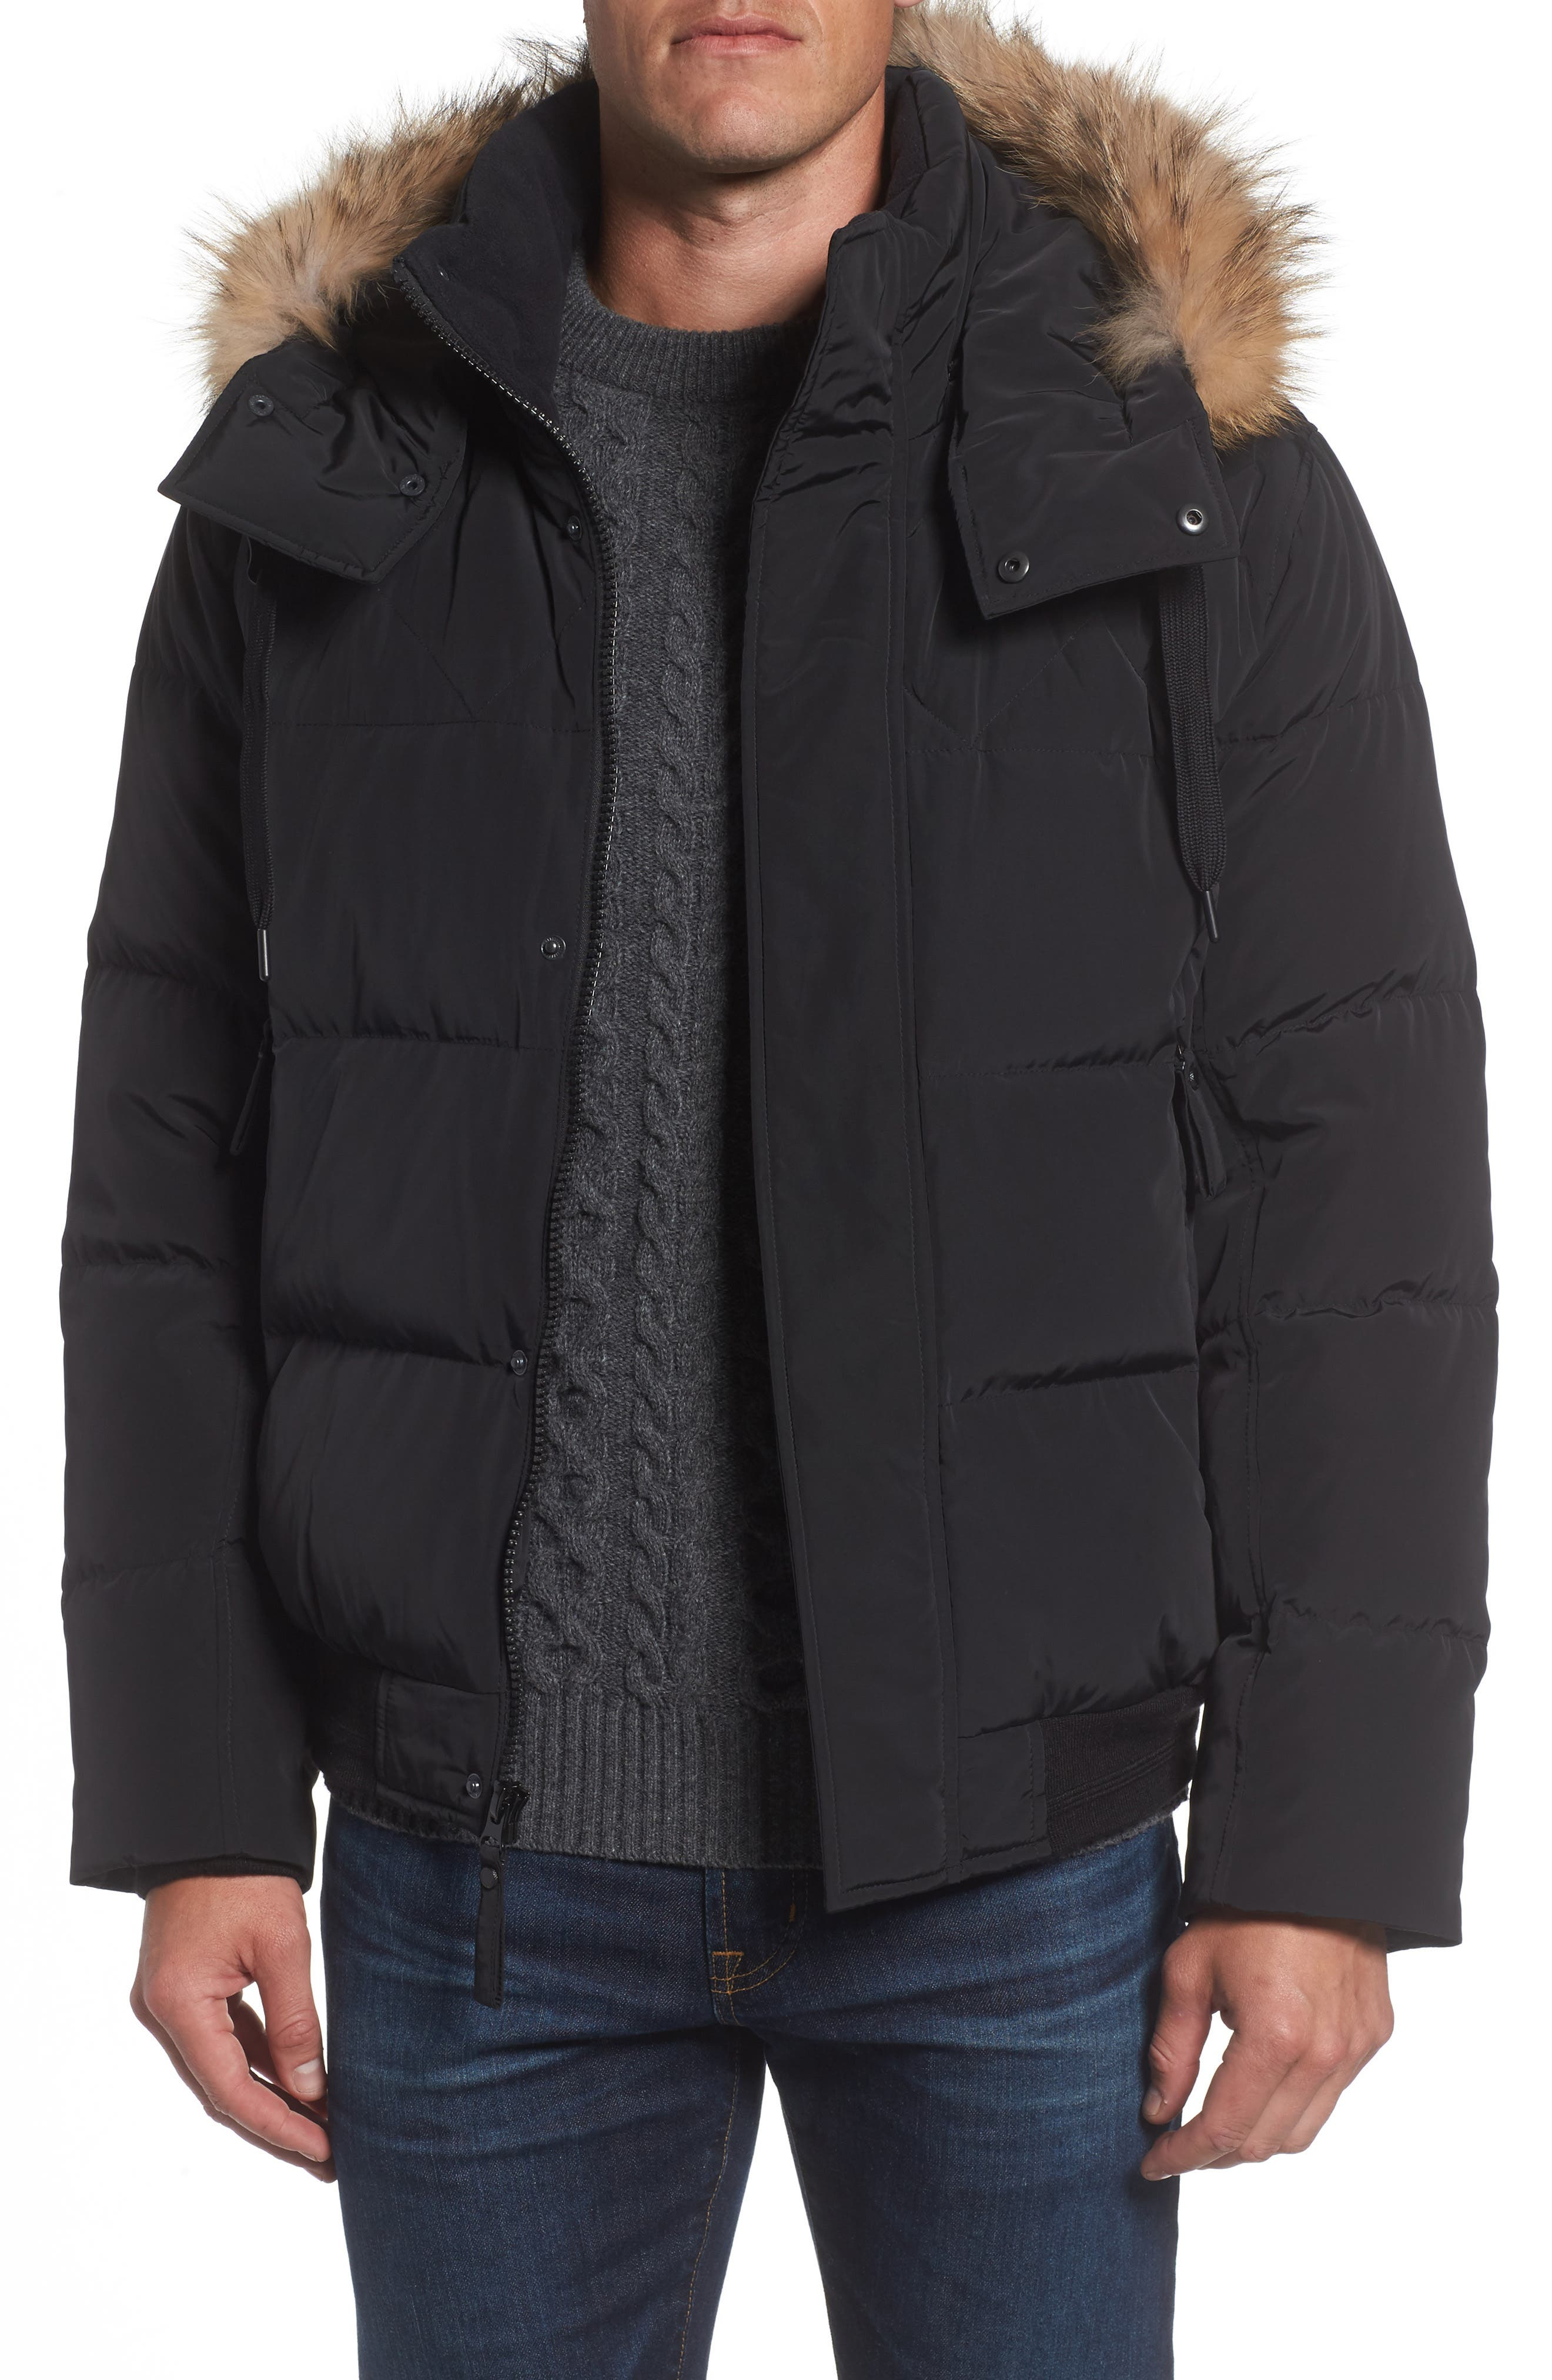 Insulated Jacket with Genuine Coyote Fur,                             Main thumbnail 1, color,                             Black